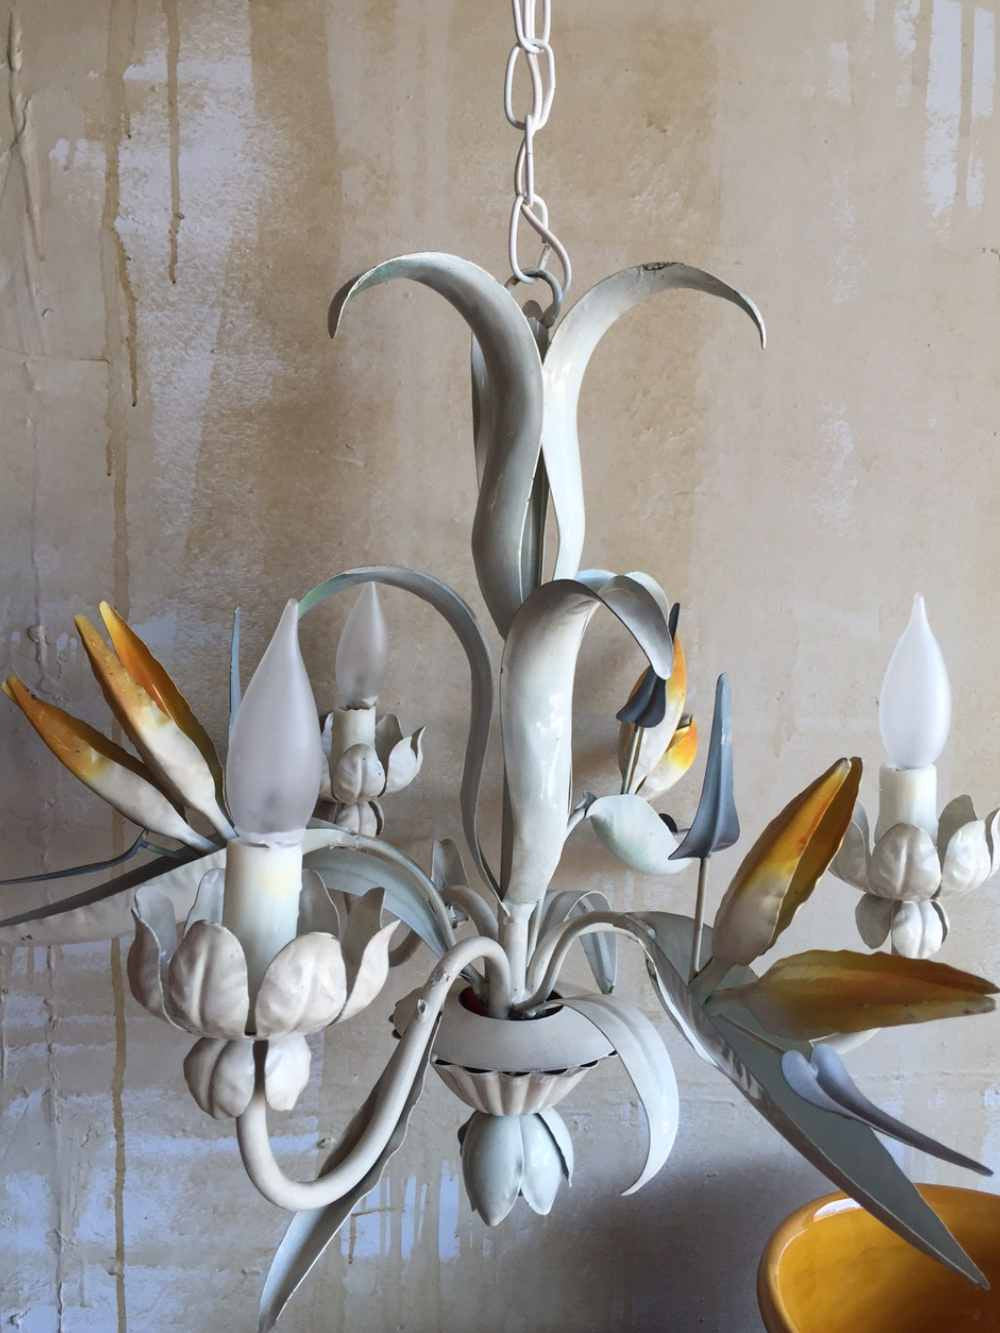 Soldvintage tole chandelier with bird of paradise vintage tole chandelier with bird of paradise mercato antiques 3 mozeypictures Image collections